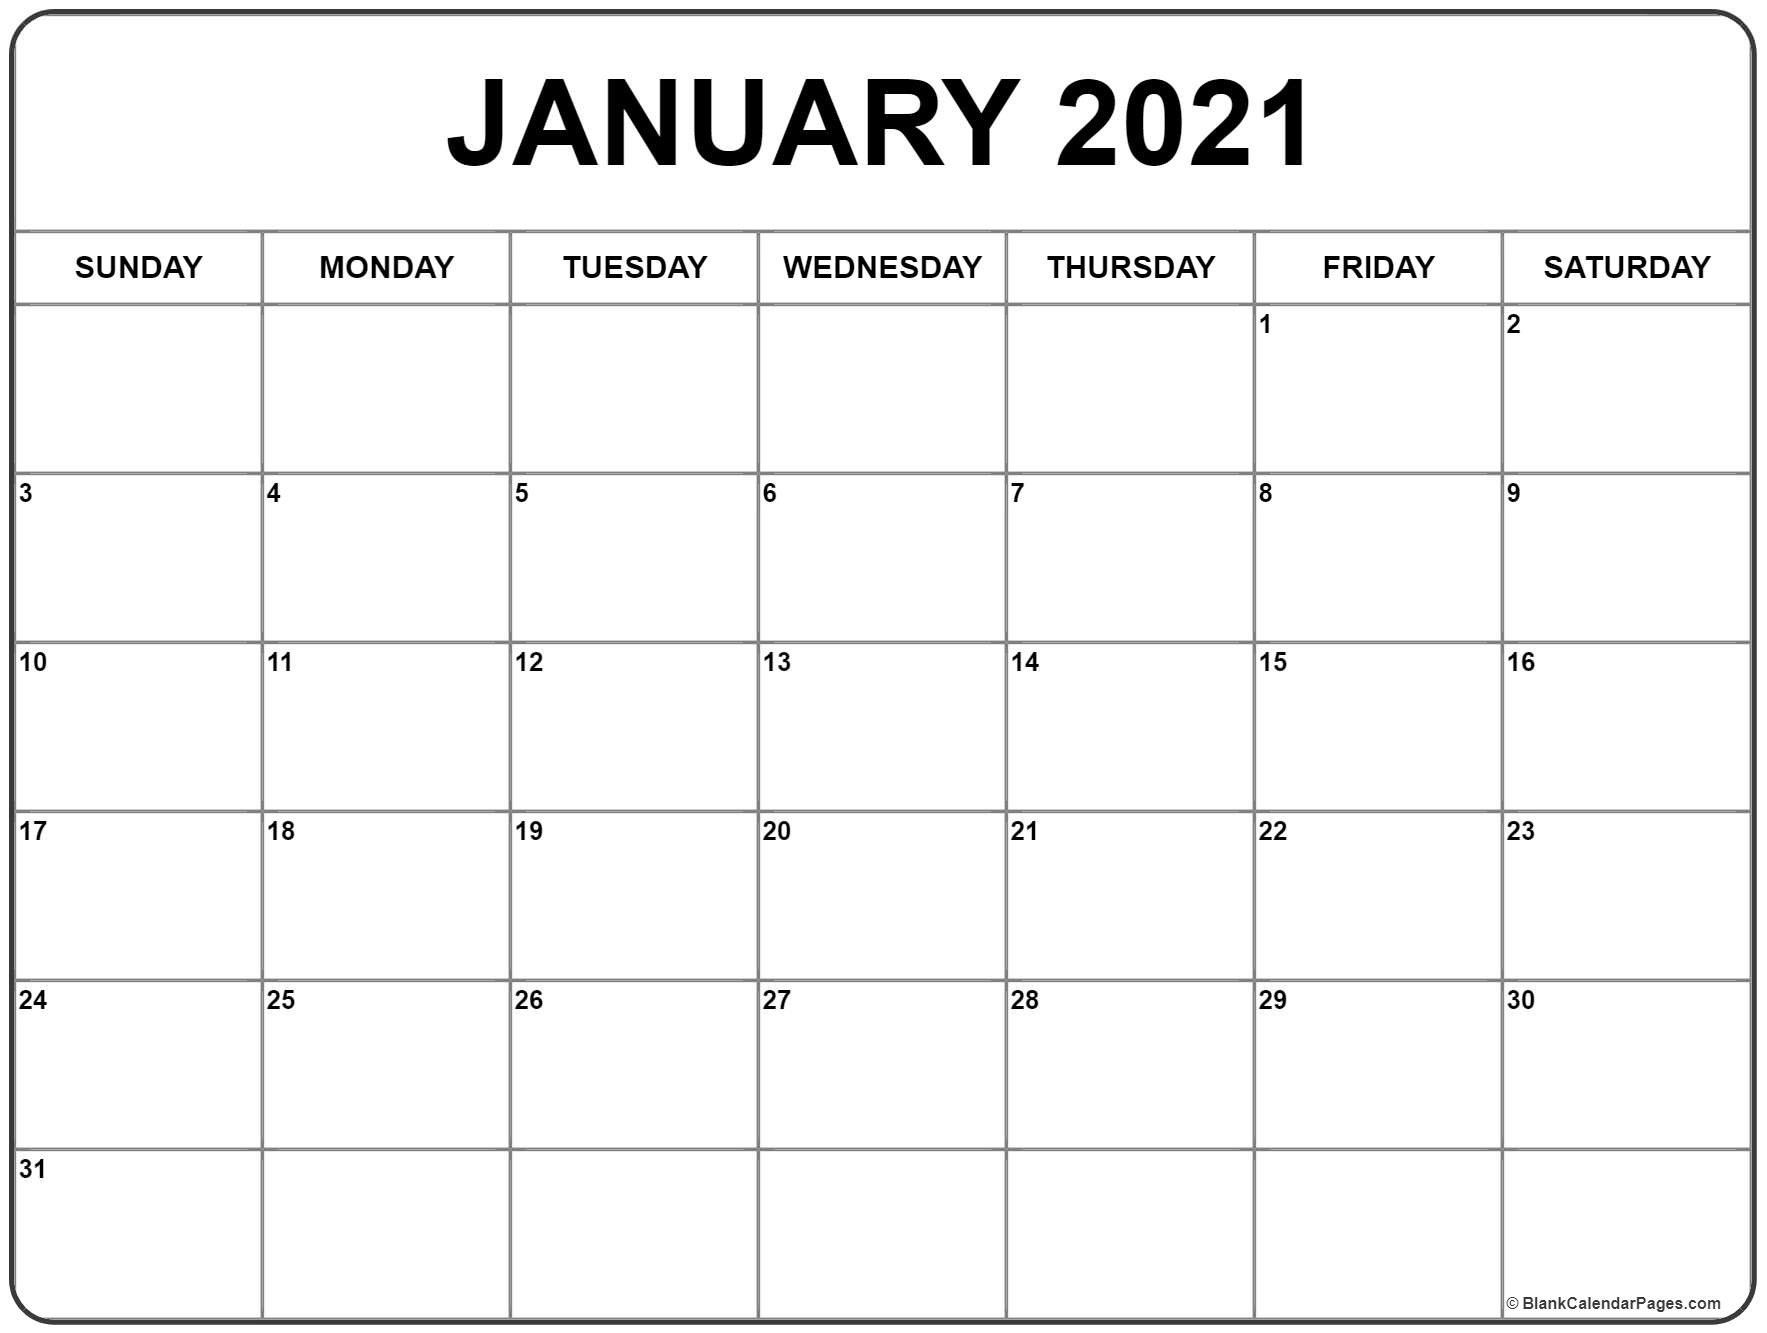 2021 Photo Calendar Template January 2021 Calendar Printable in 2020 | Monthly calendar